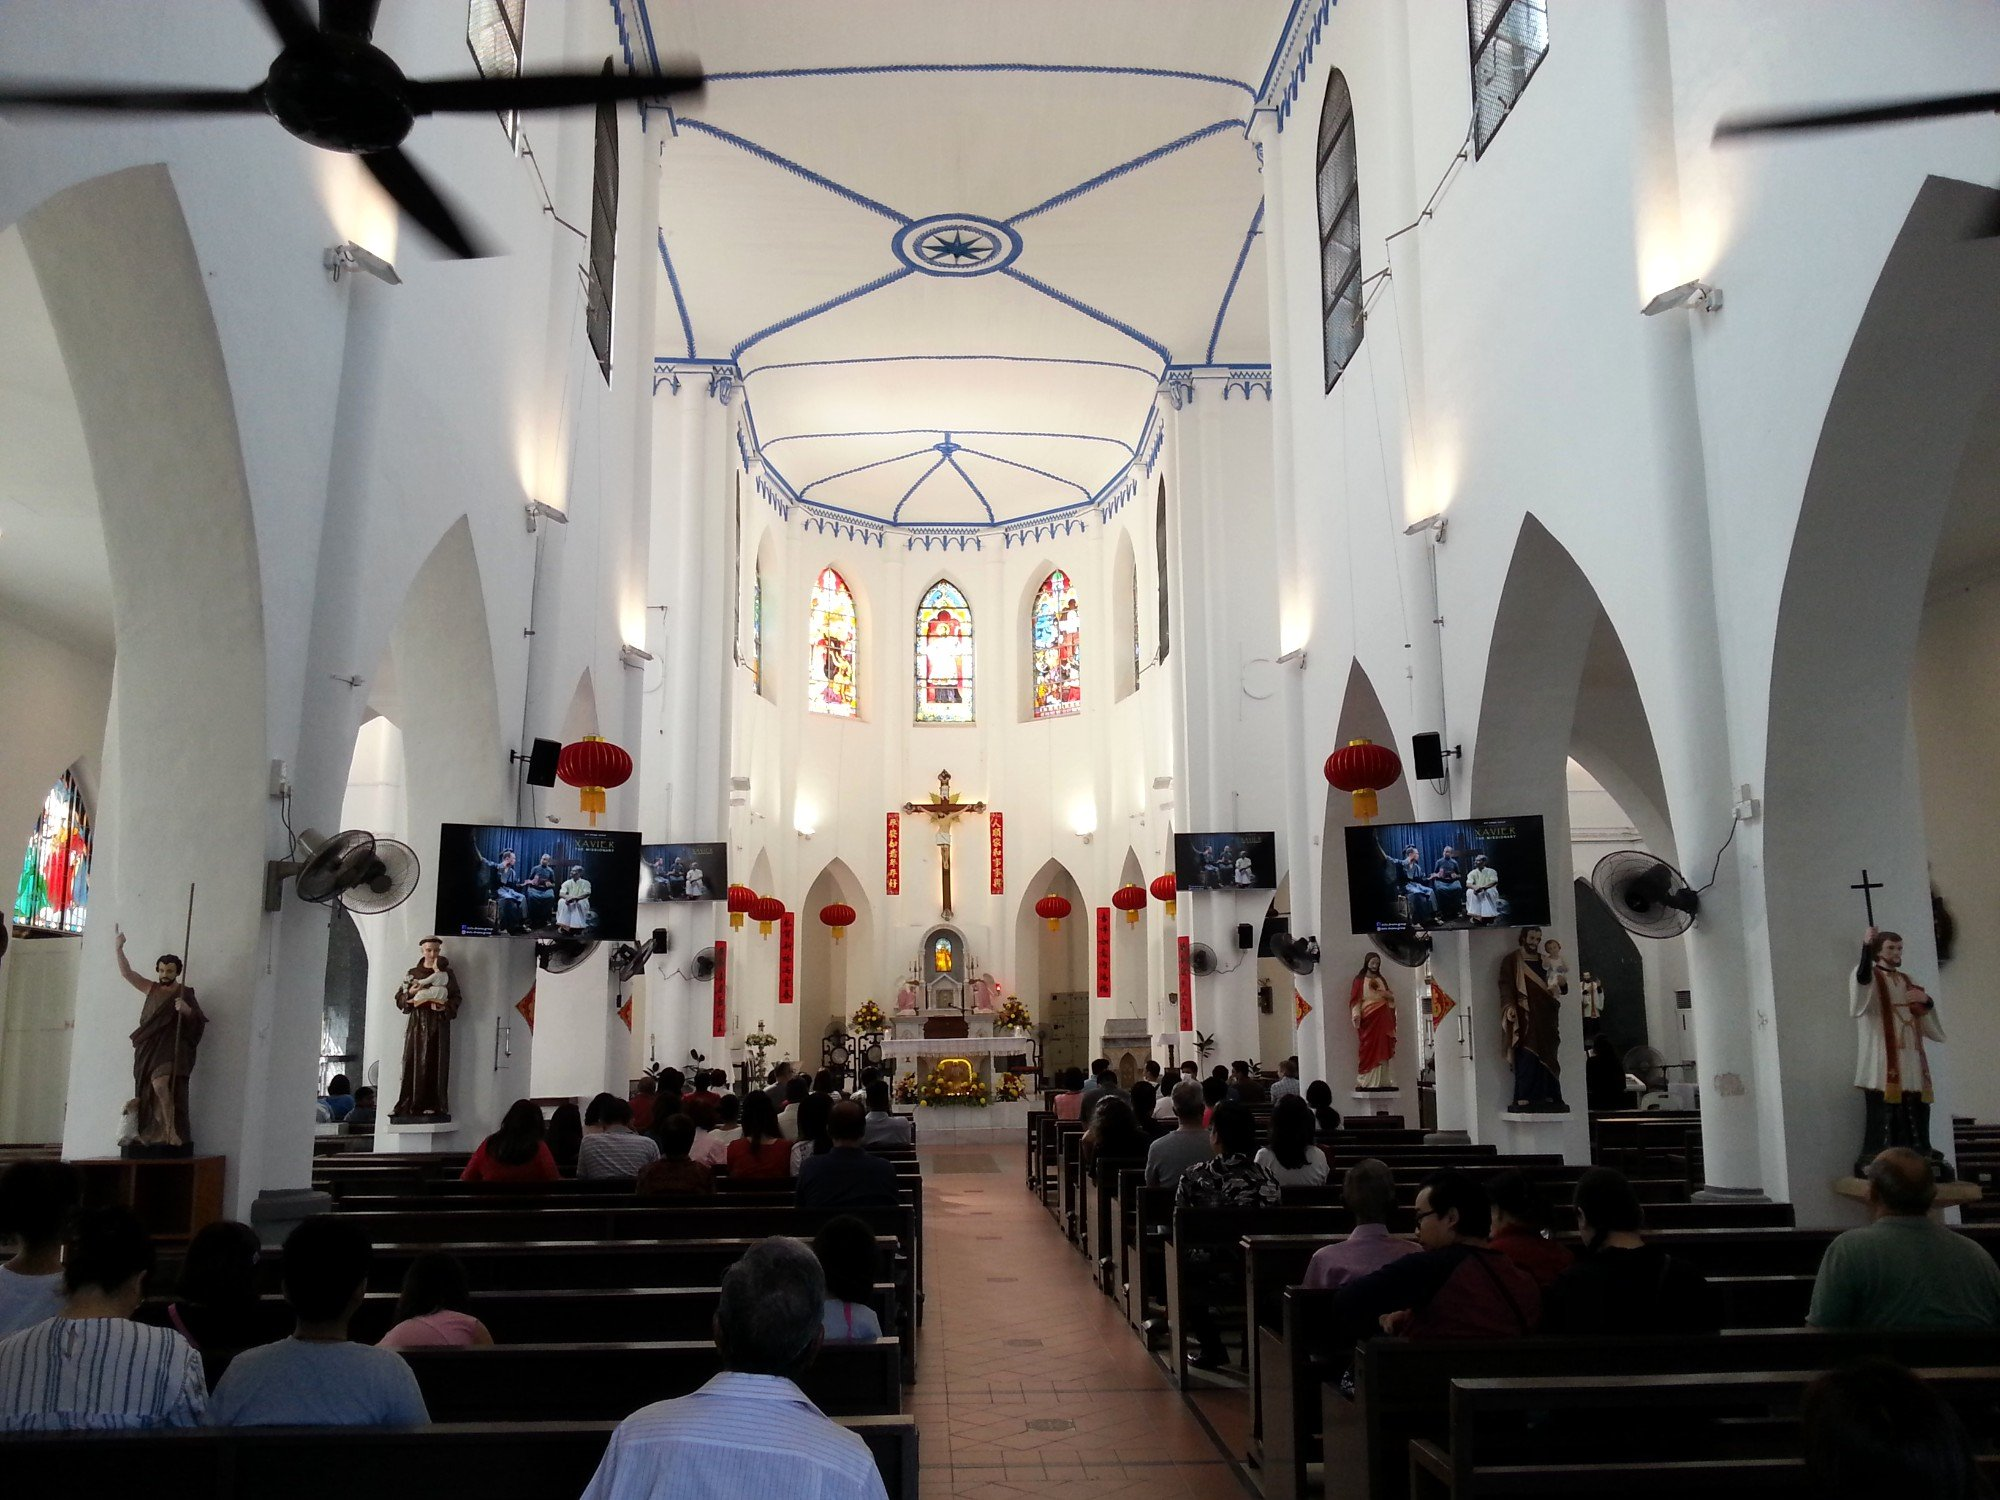 Inside the Church of St. Francis Xavier